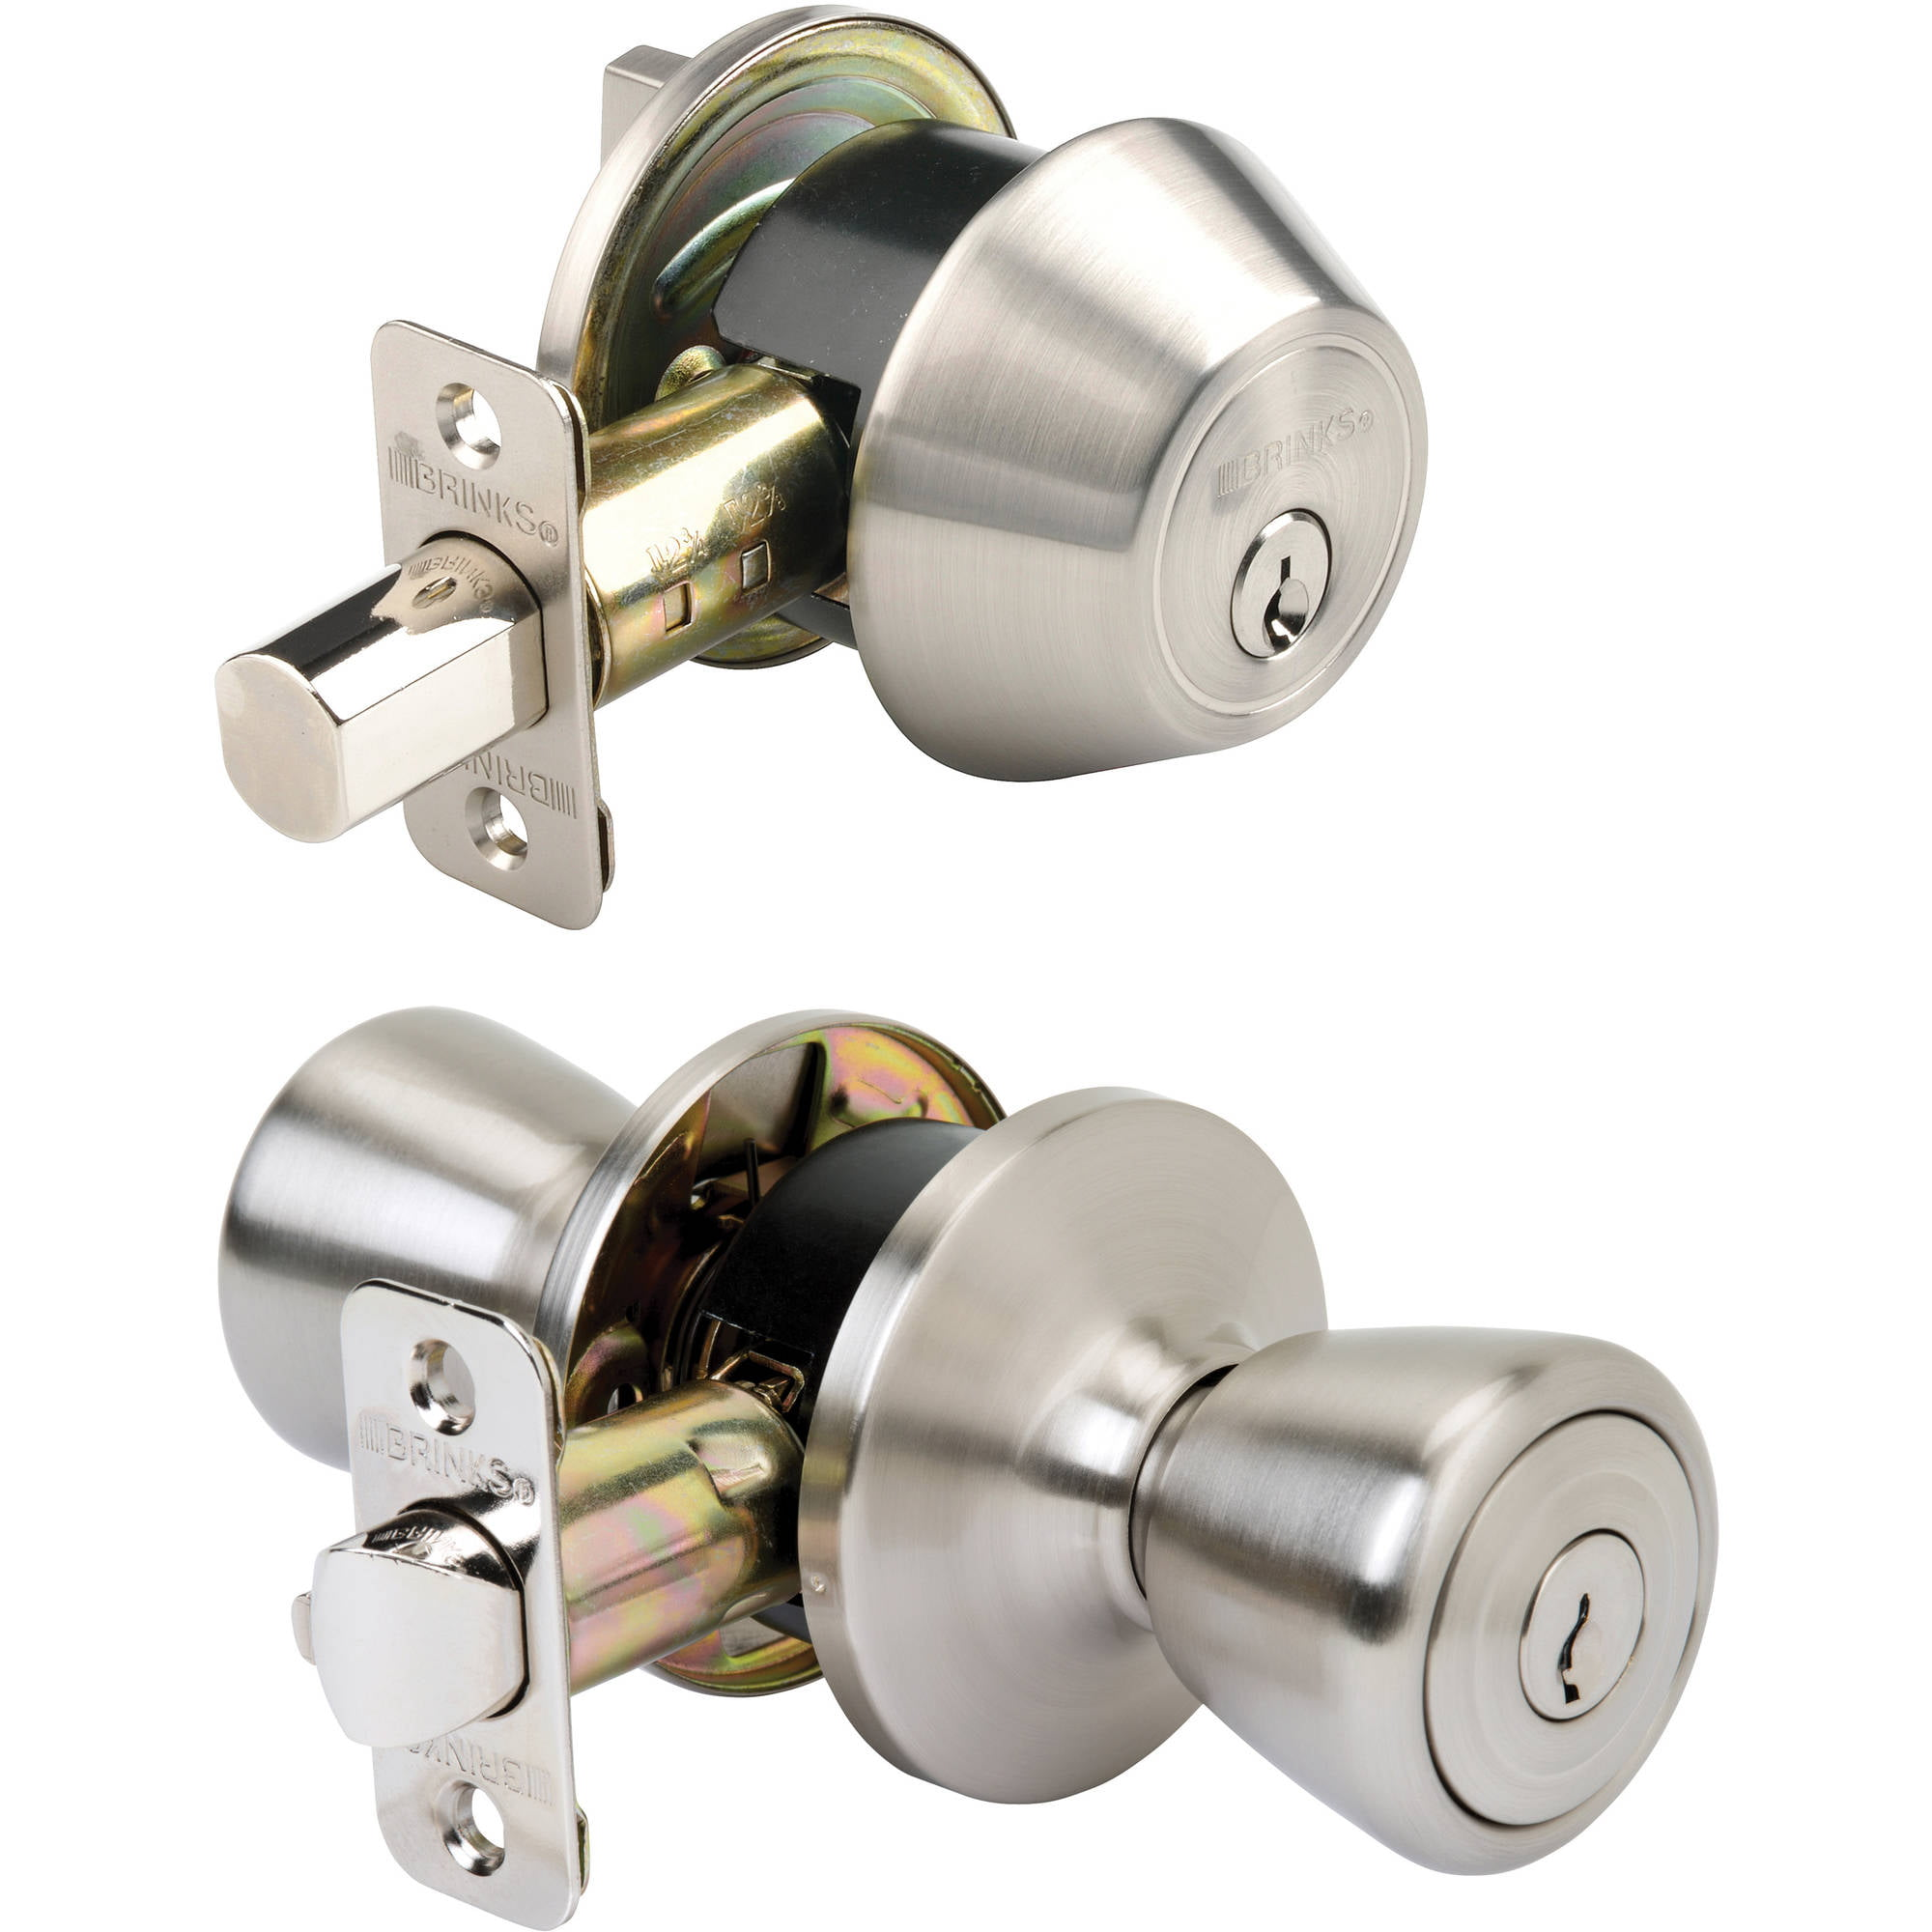 Brinks Tulip Style Keyed Entry Door Knob and Single Deadbolt